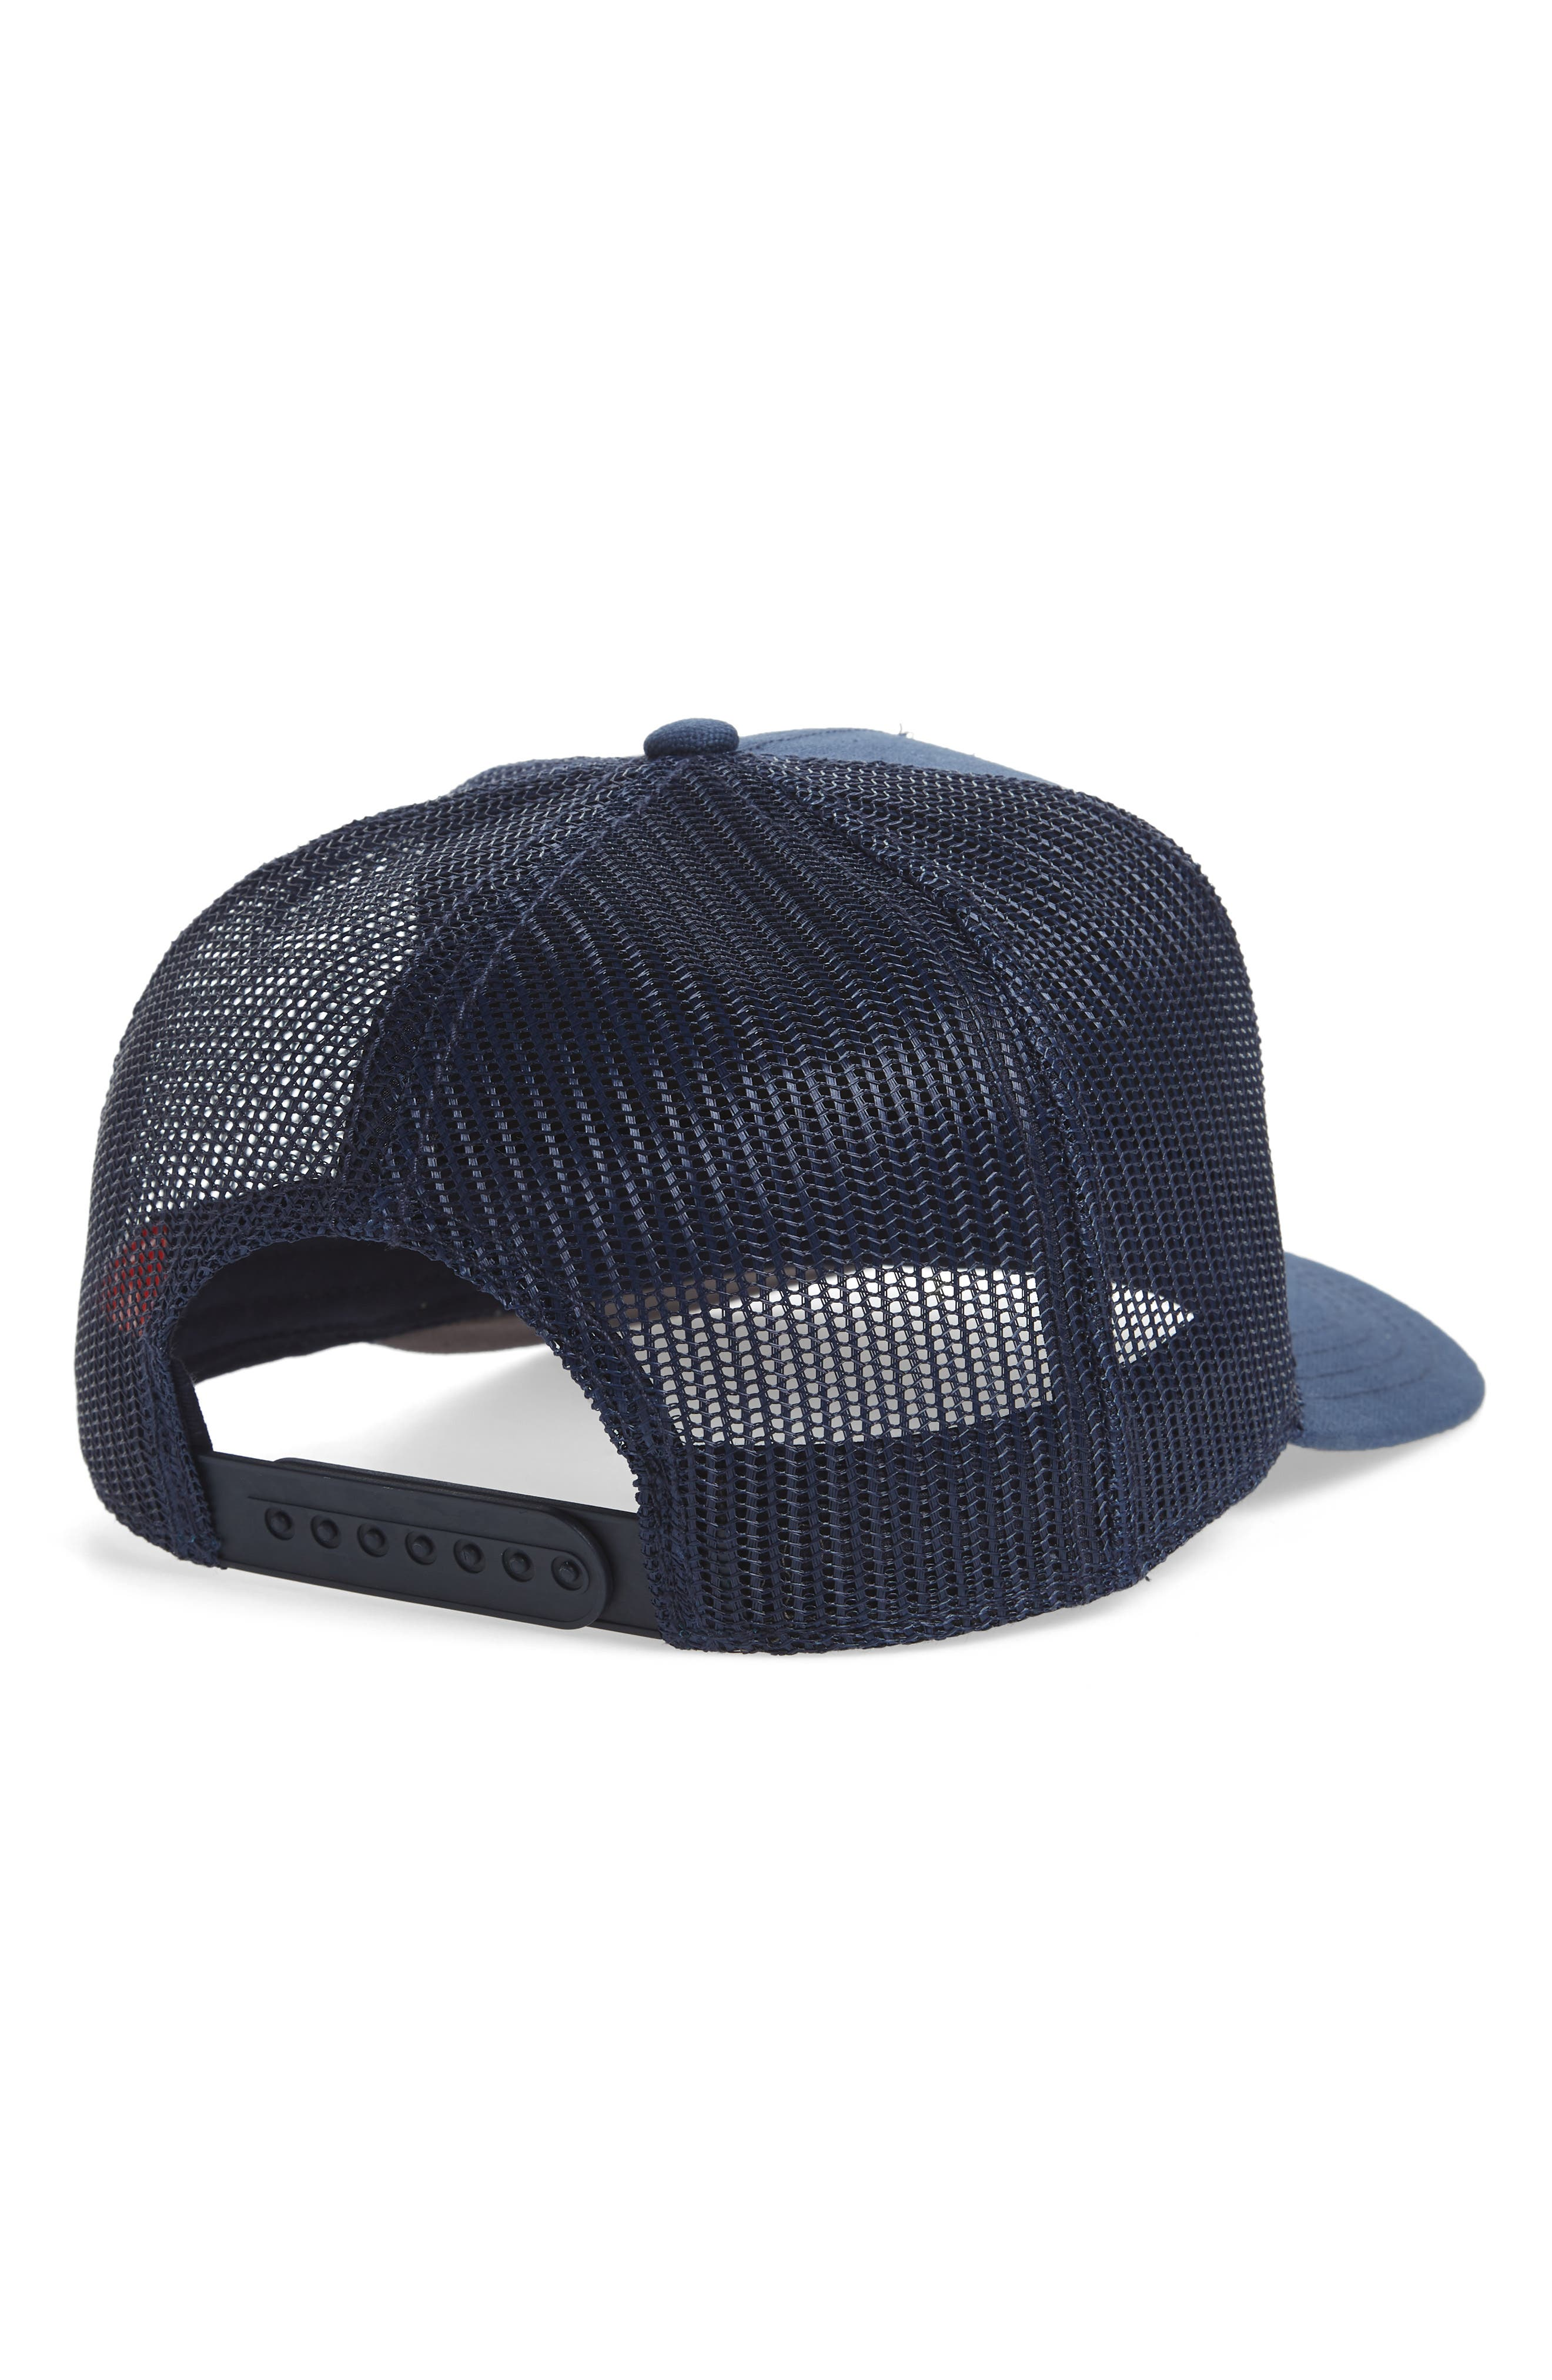 Valin Coast Trucker Cap,                             Alternate thumbnail 4, color,